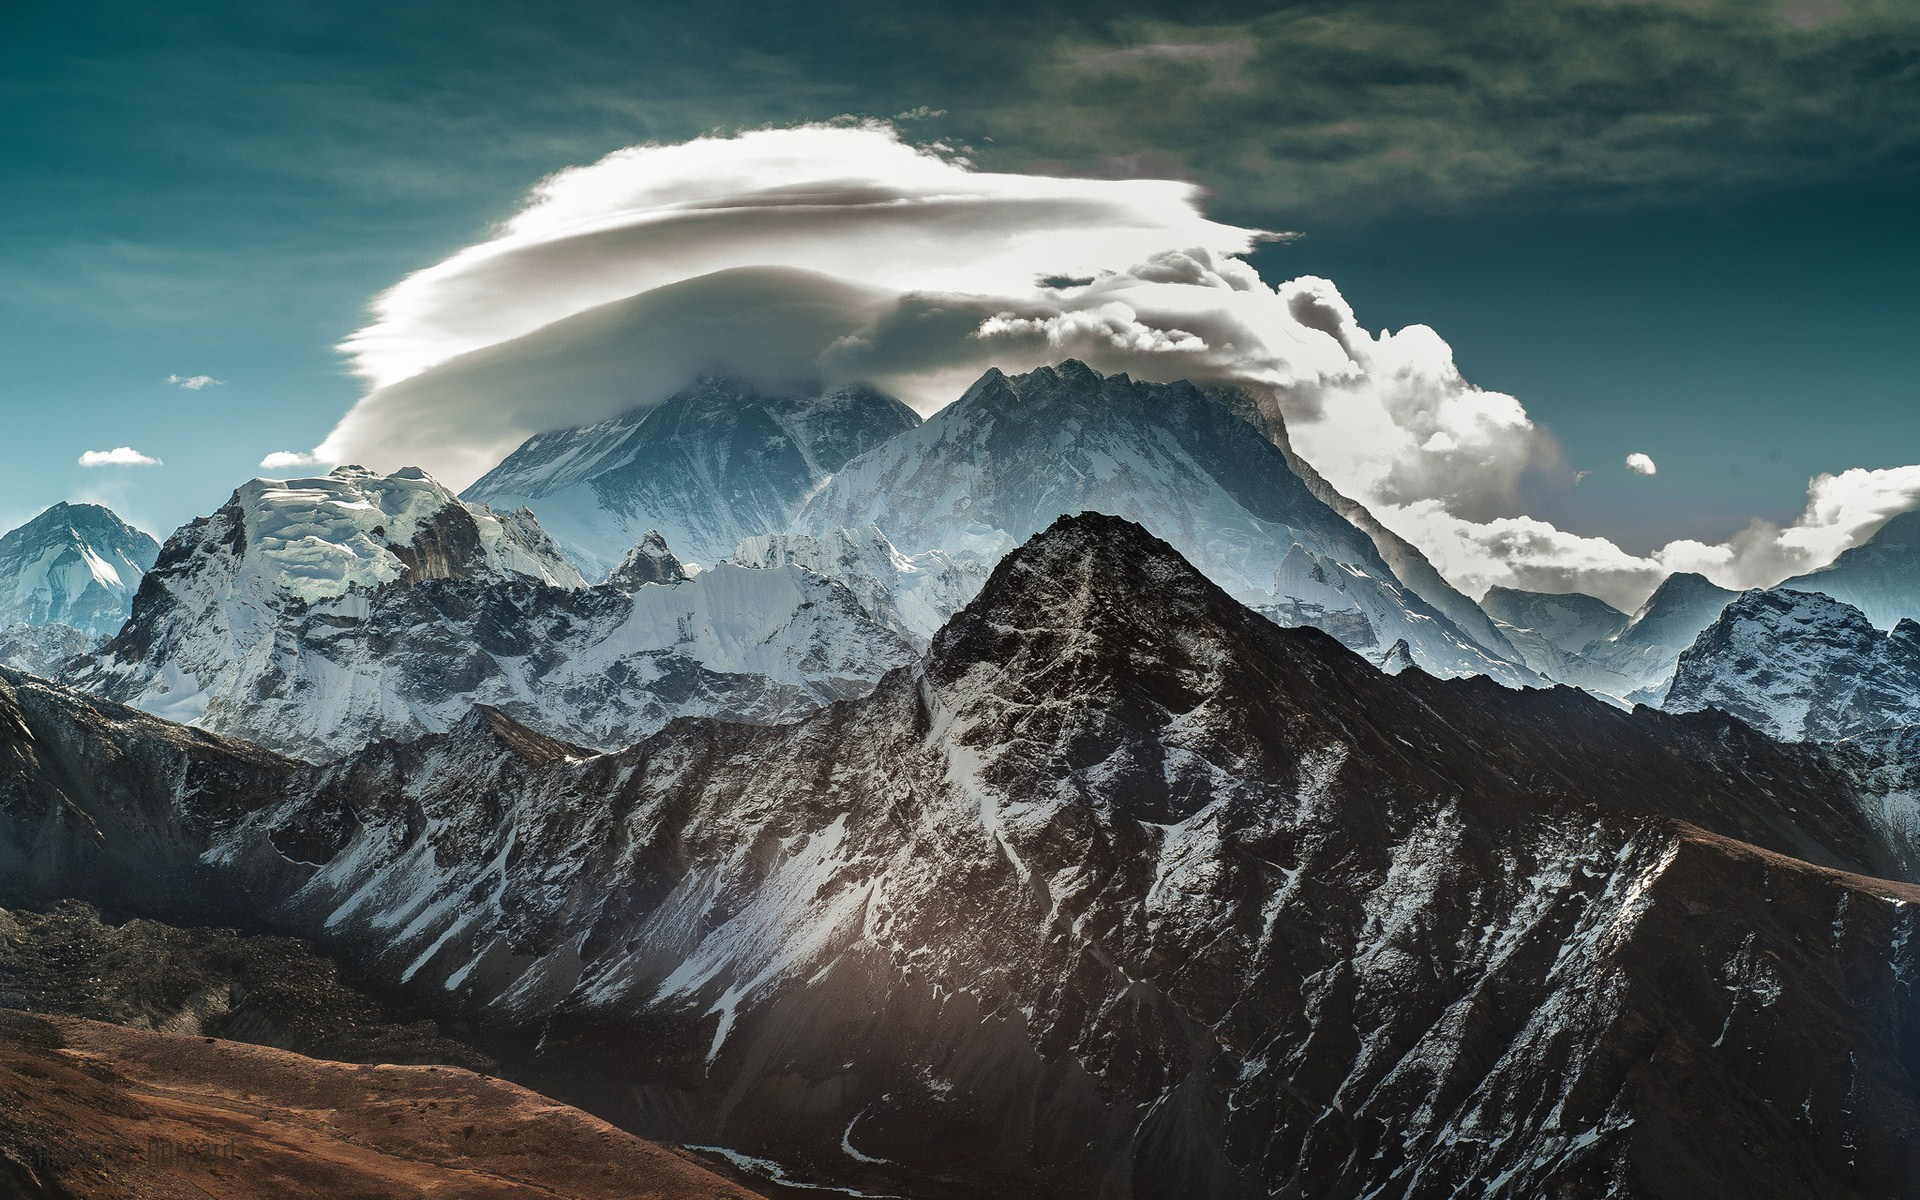 Mountains Snow Clouds Sky Nature Photo